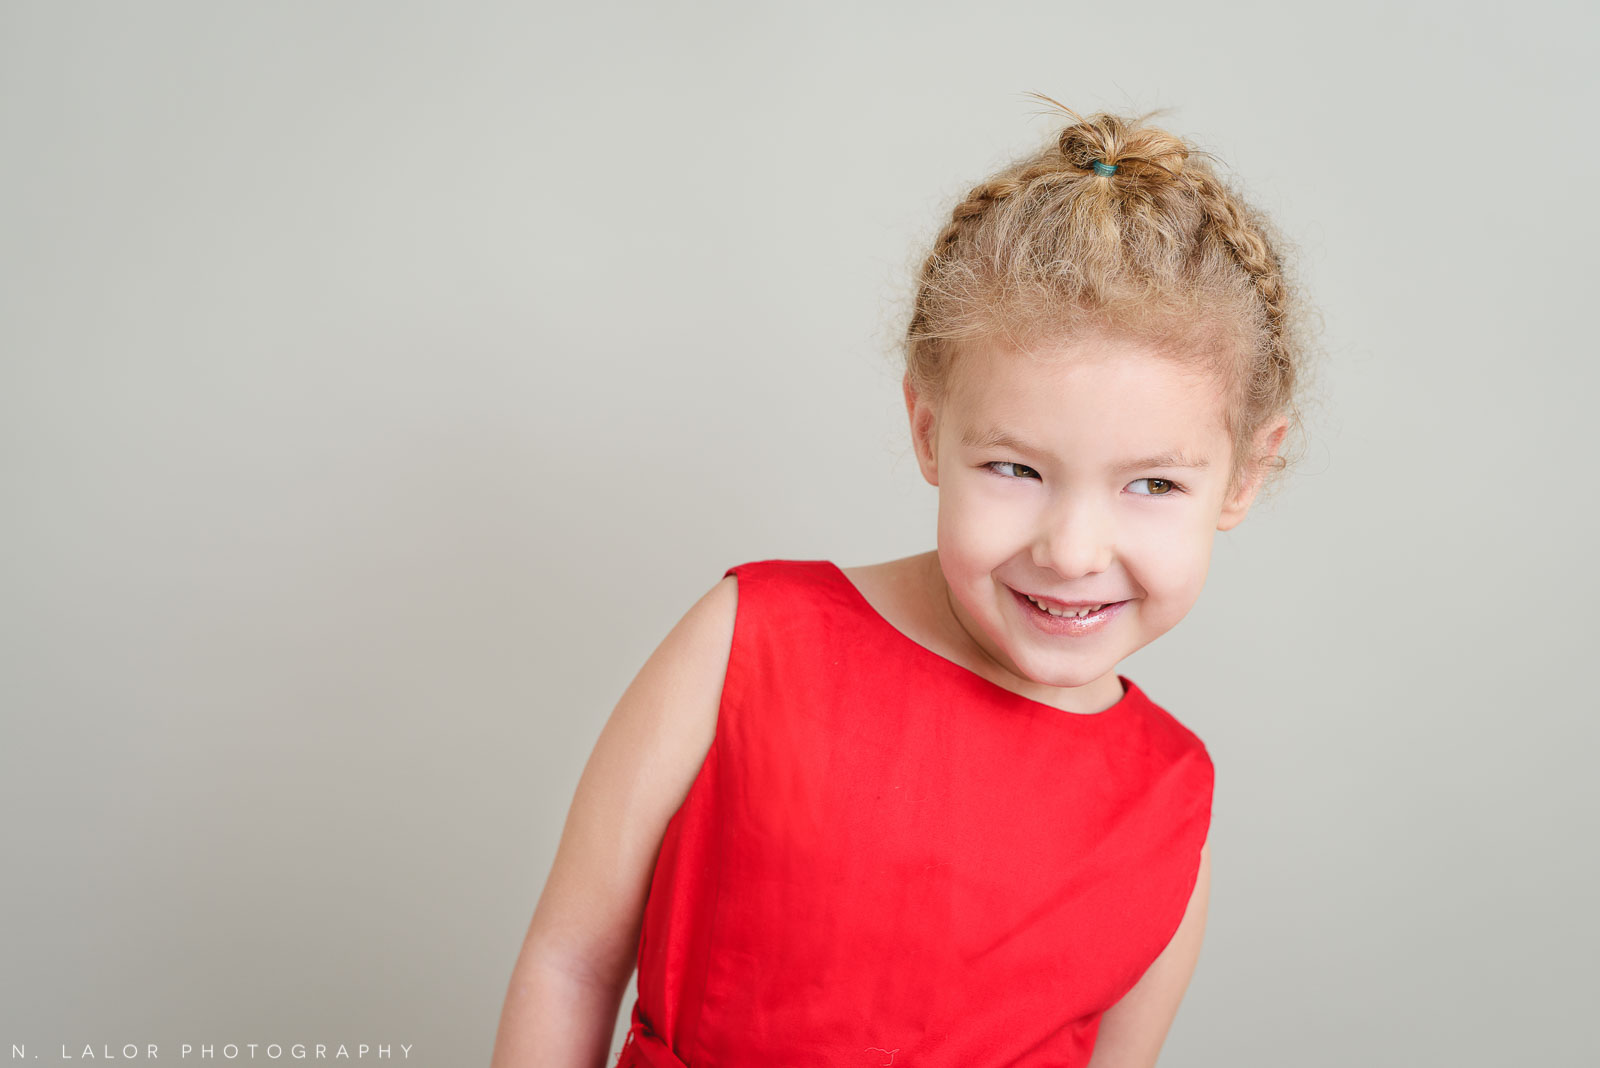 A Holiday smile. Greenwich CT Kids Photo Studio Portraits by N. Lalor Photography